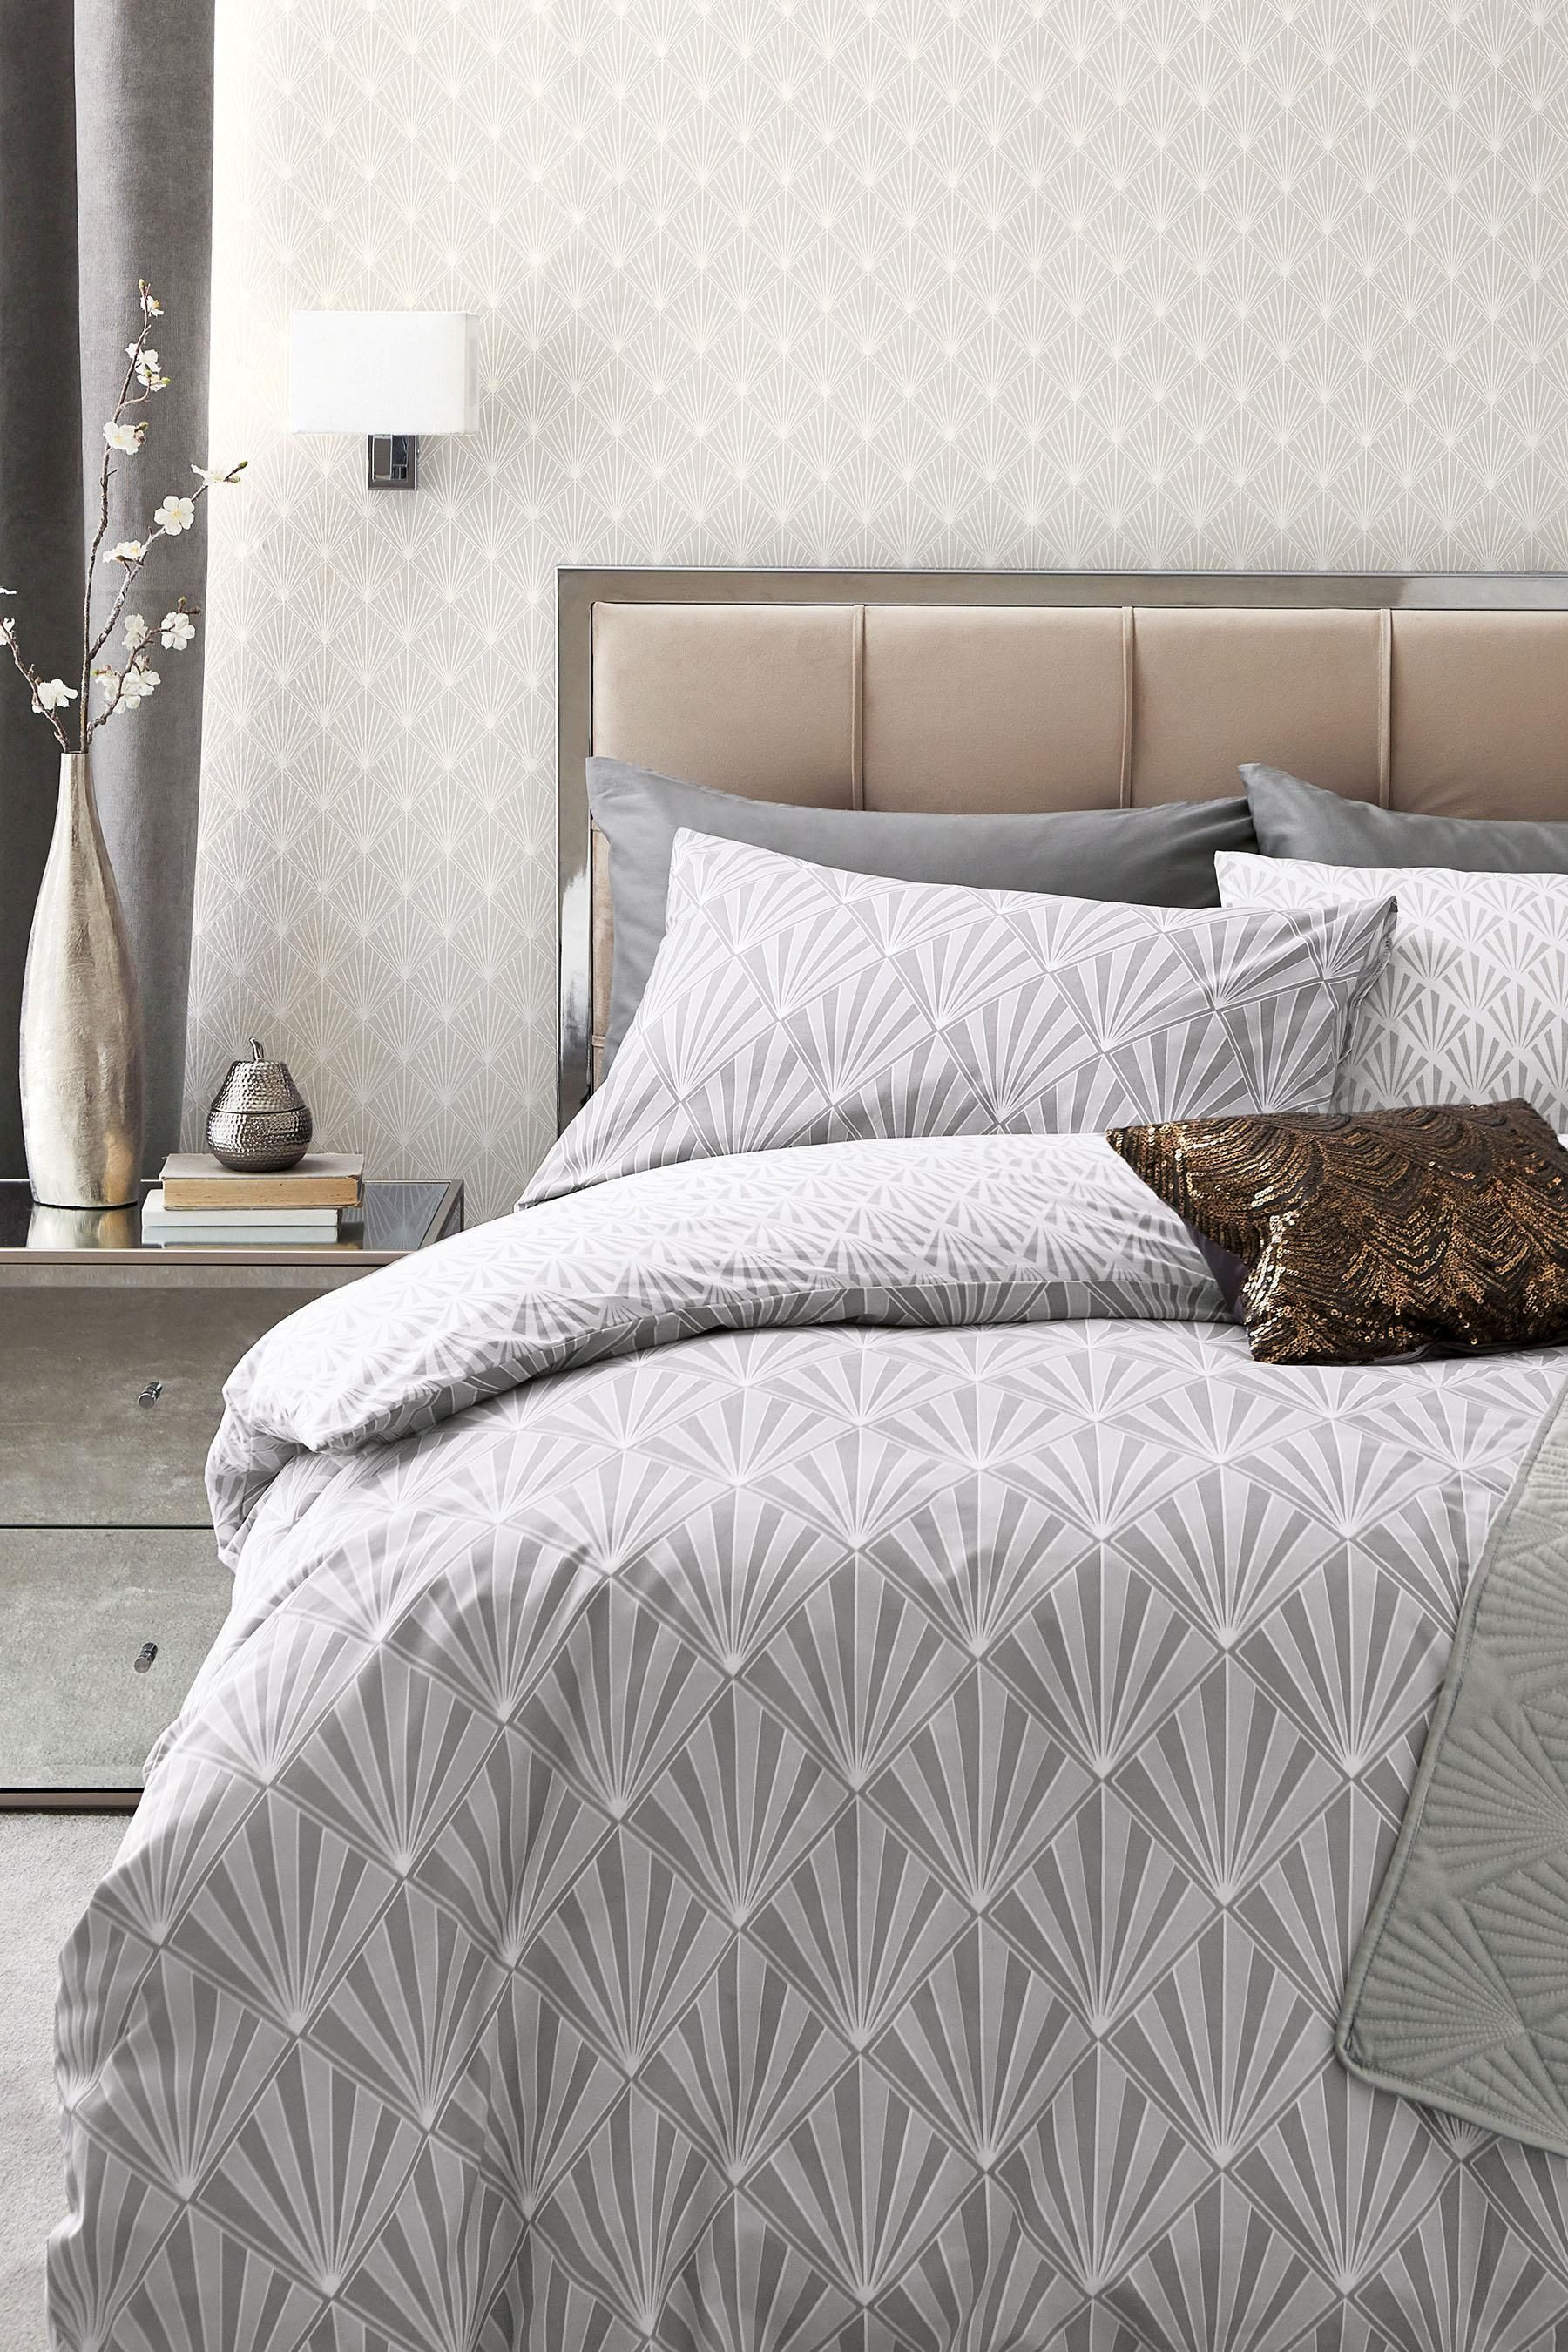 Buy A Bed Buy Deco Fan Bed Set From The Next Uk Online Shop Winter